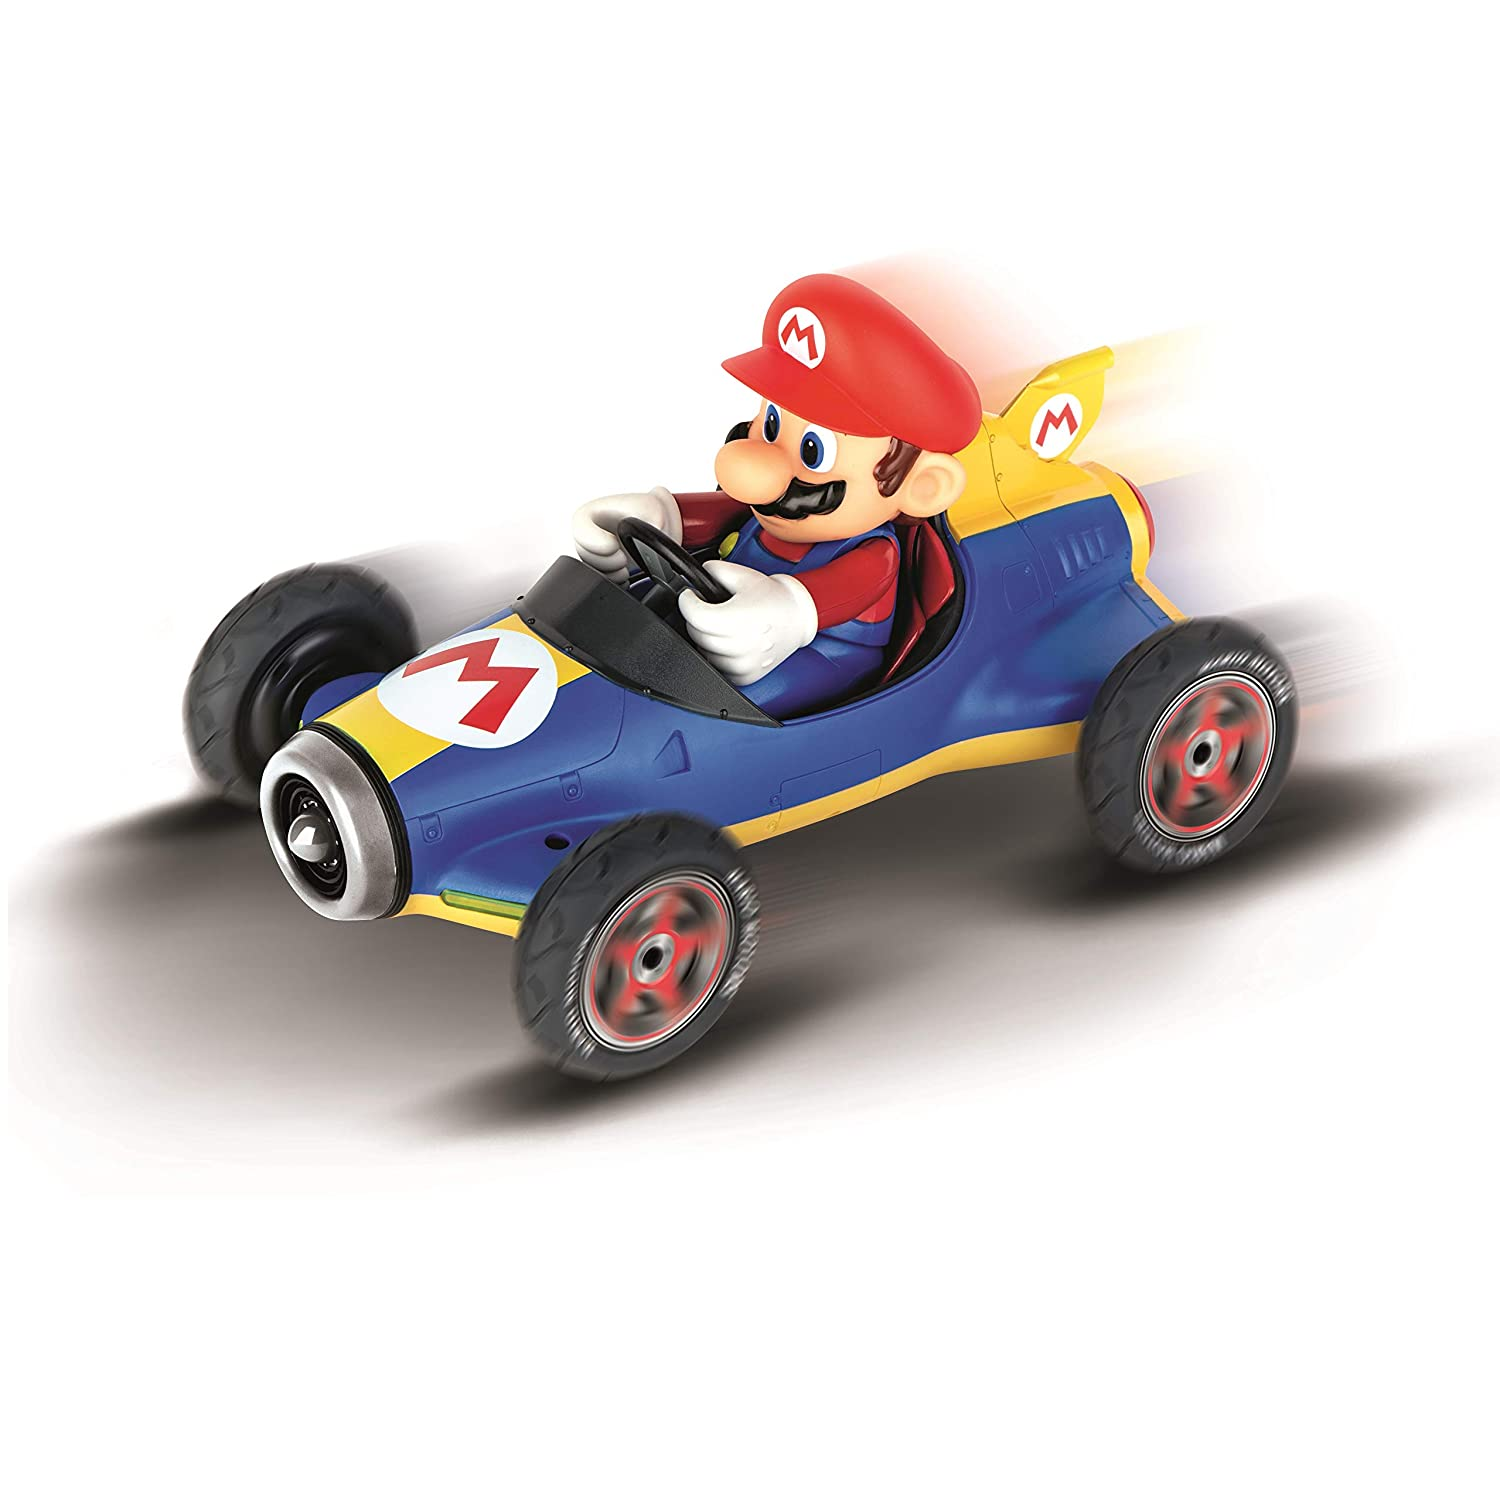 Carrera RC 370181066 Official Licensed Kart Mach 8 Mario 1 18 Scale 2.4 Ghz Remote Control Car with Rechargeable Lifepo4 Battery Kids Toys Boys//Girls